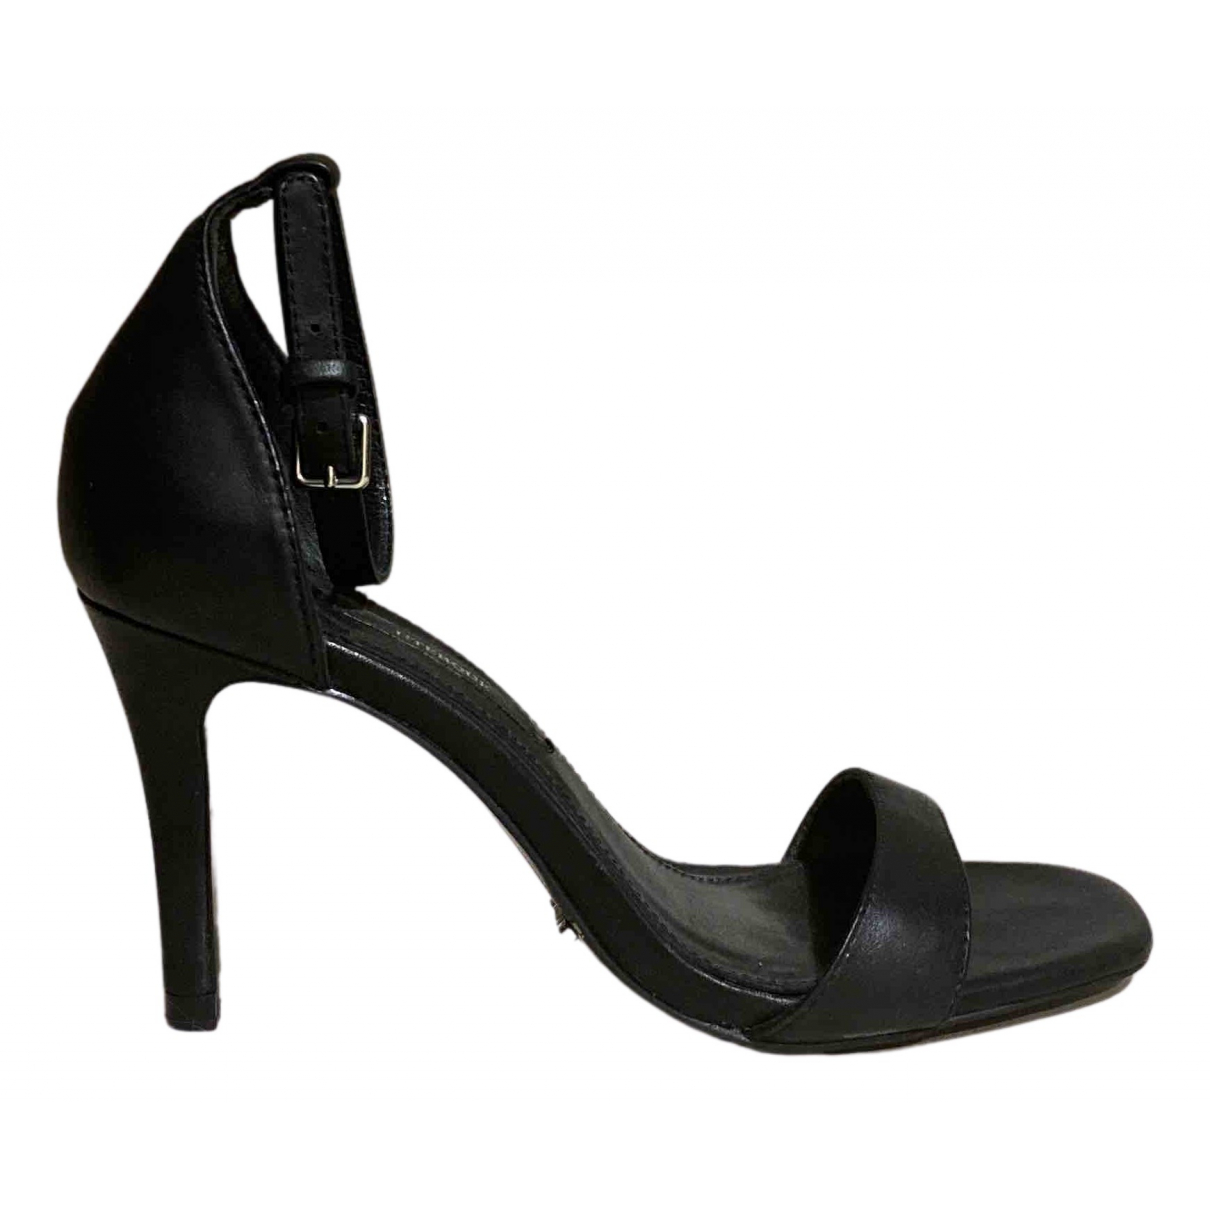 Uterque N Black Leather Sandals for Women 36 EU